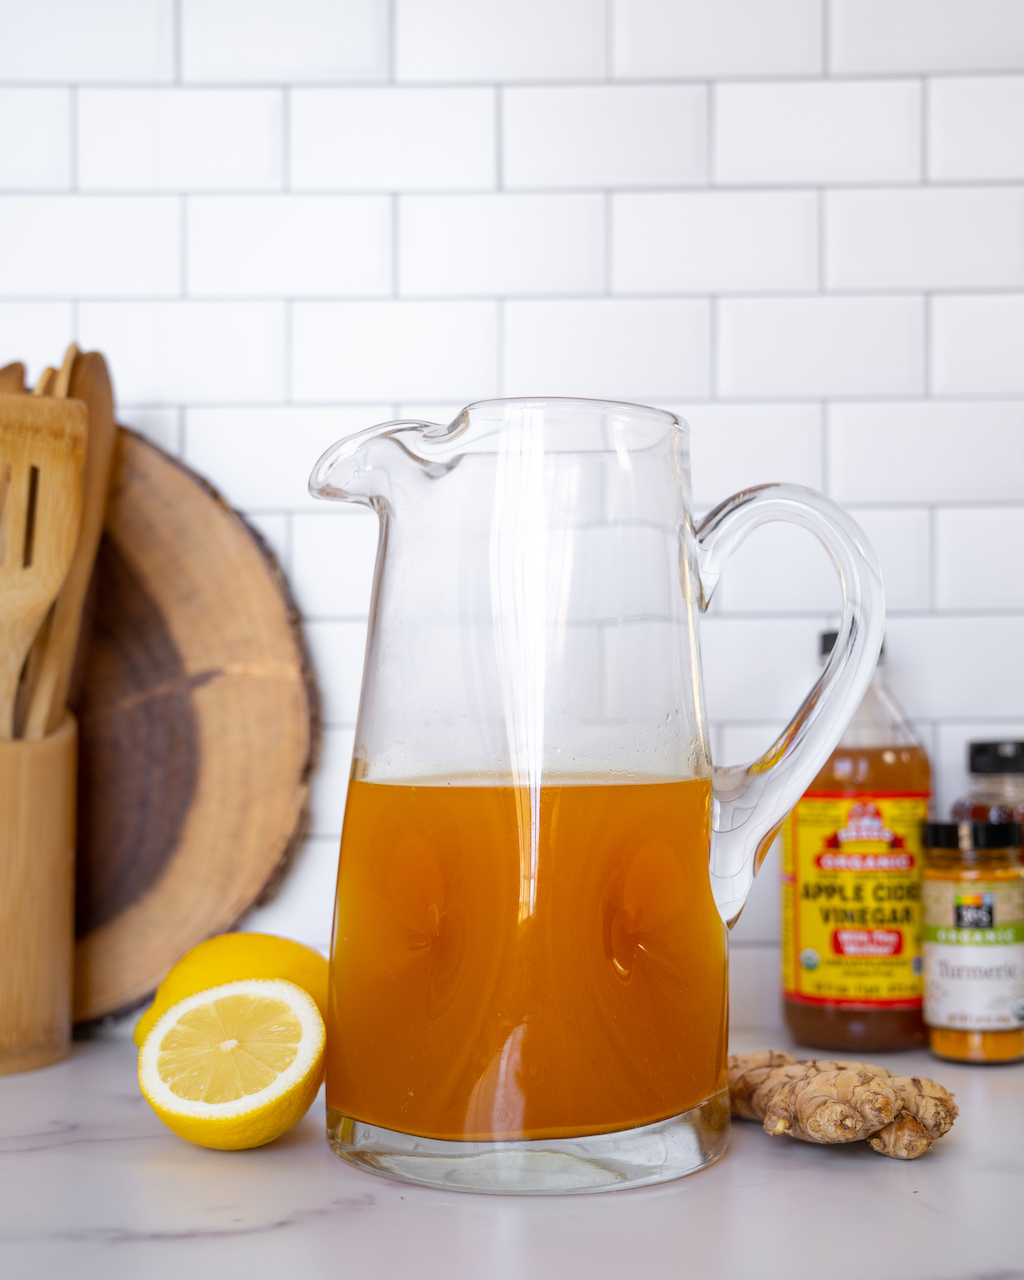 Pitcher of Super Youth Apple Cider Vinegar Detox Recipe with ingredients in the background